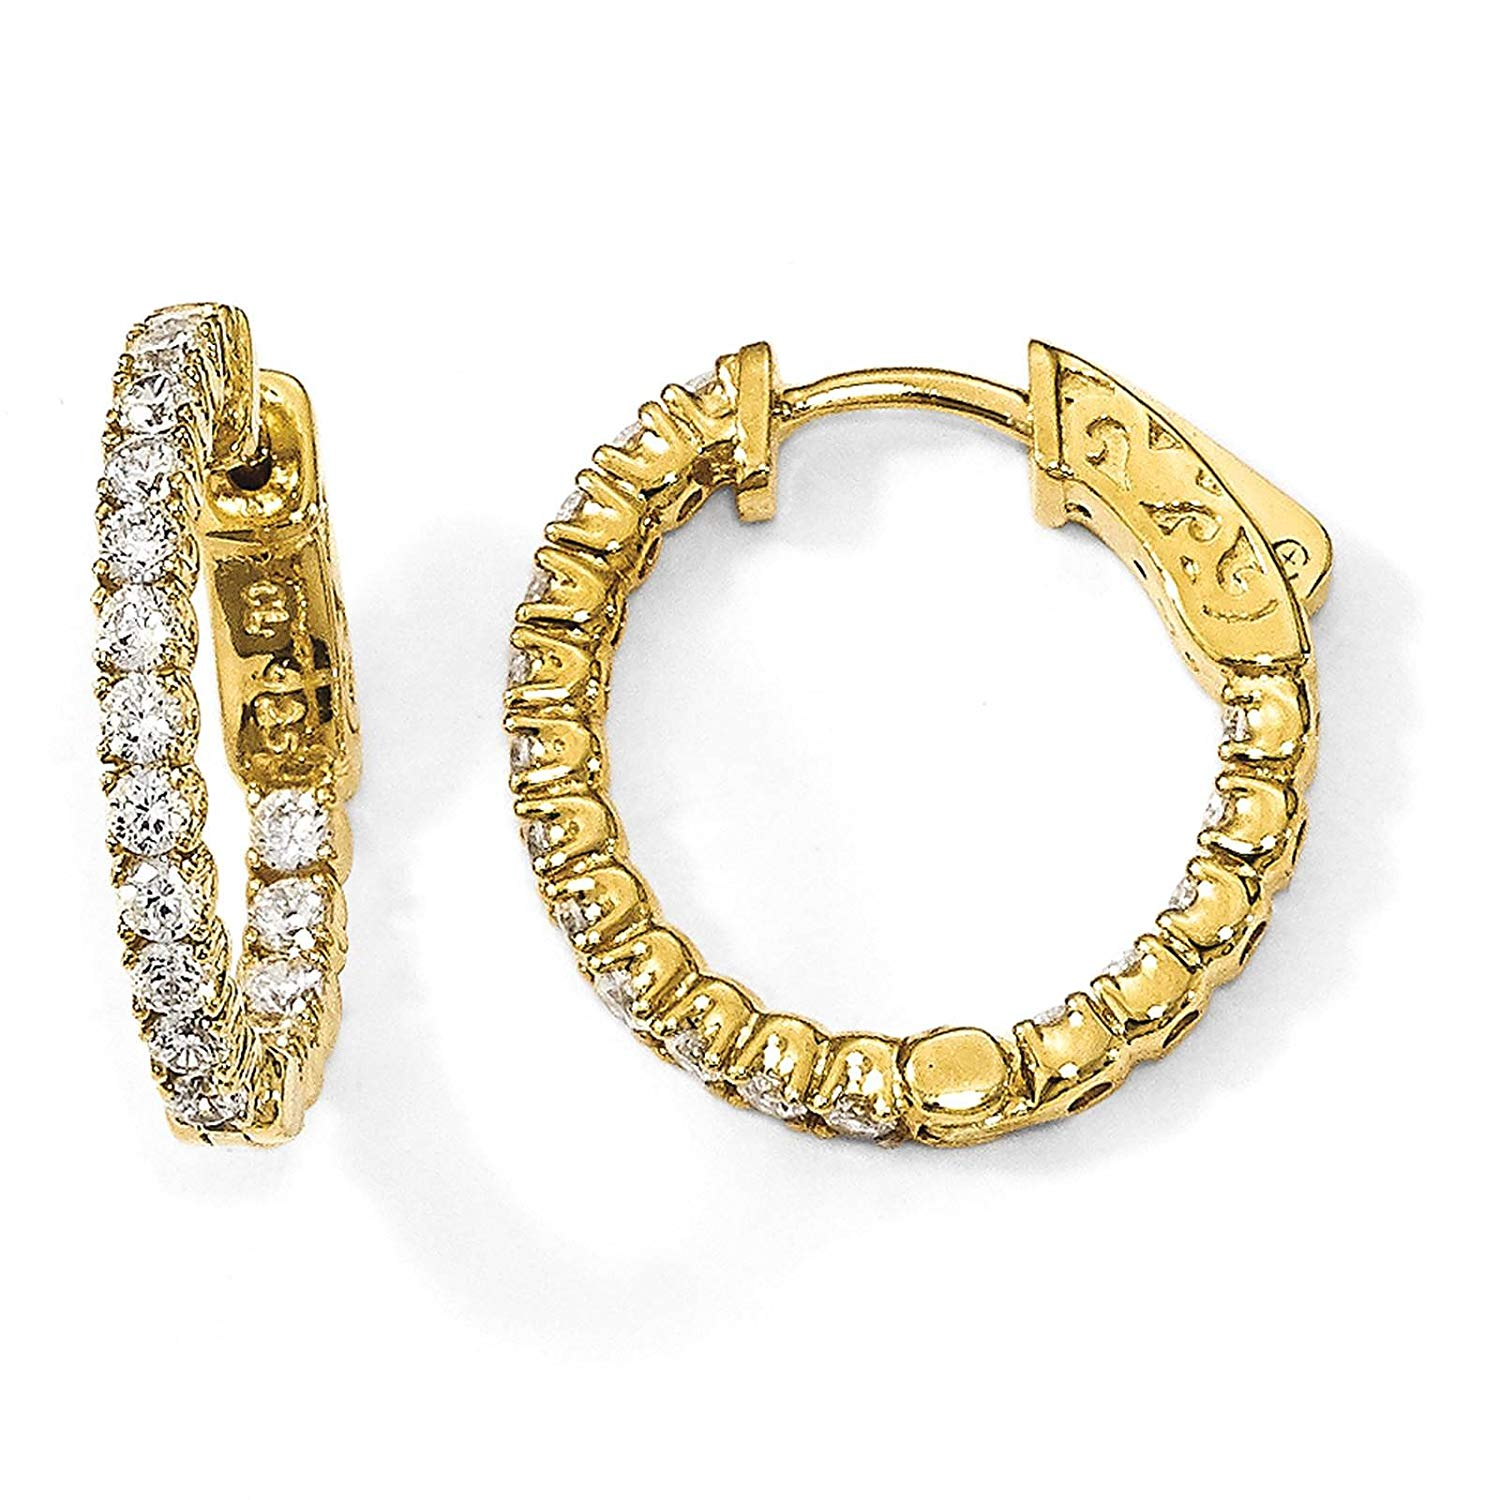 .925 Sterling Silver Gold-tone CZ In & Out Round Hoop Earrings 2mm x 19mm by Sterling Shimmer